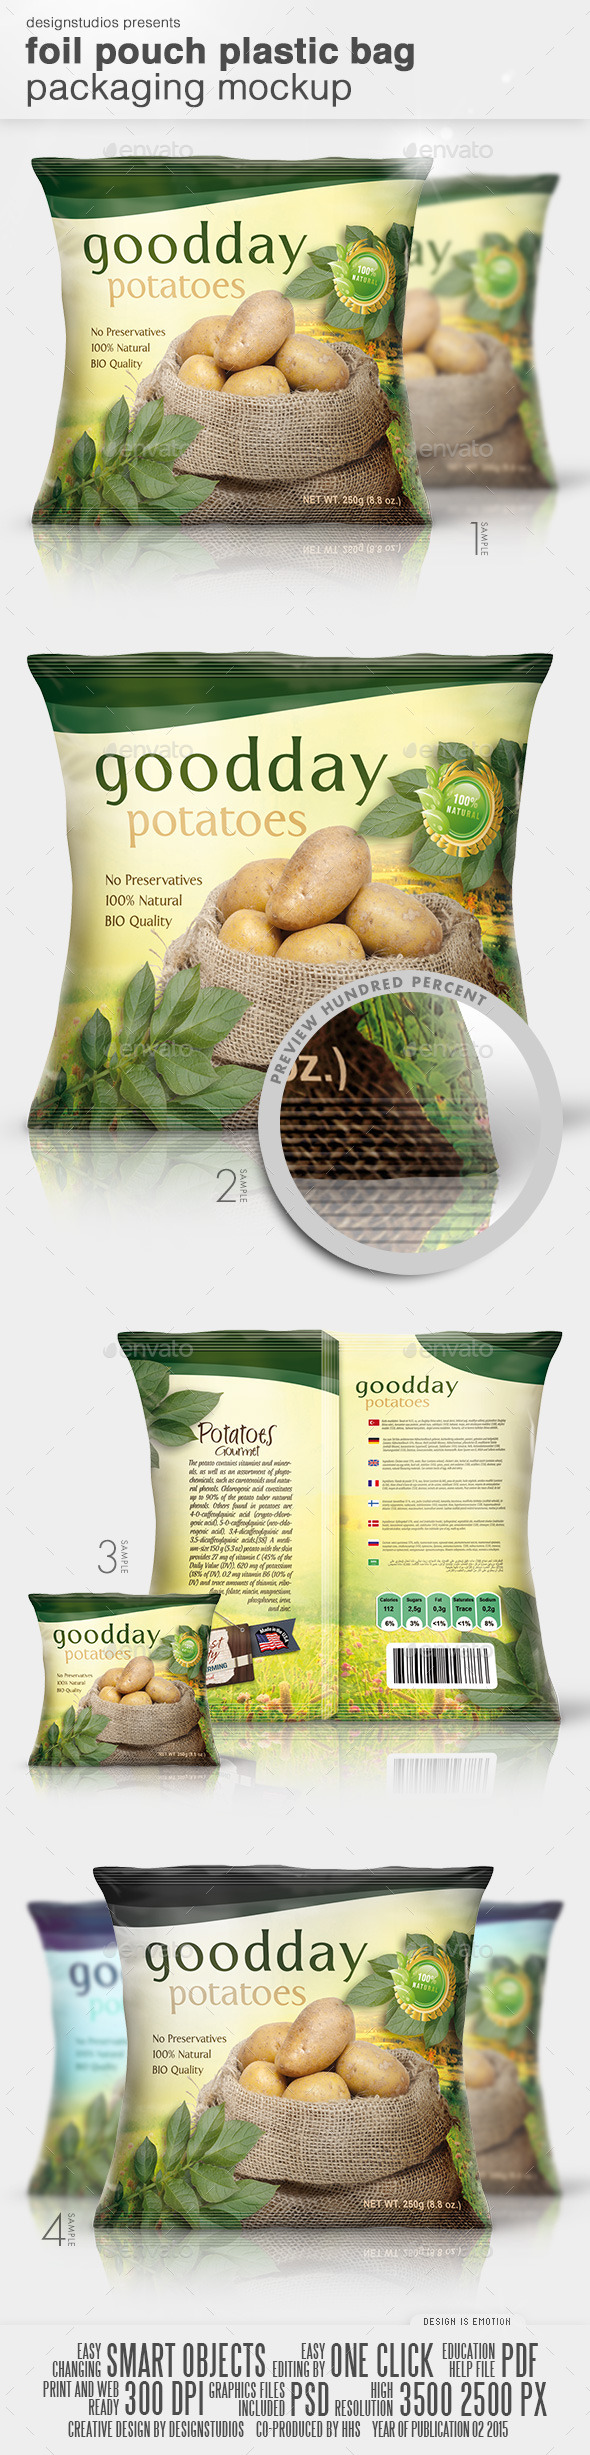 GraphicRiver Foil Pouch Plastic Bag Packaging Mock-Up 10545171